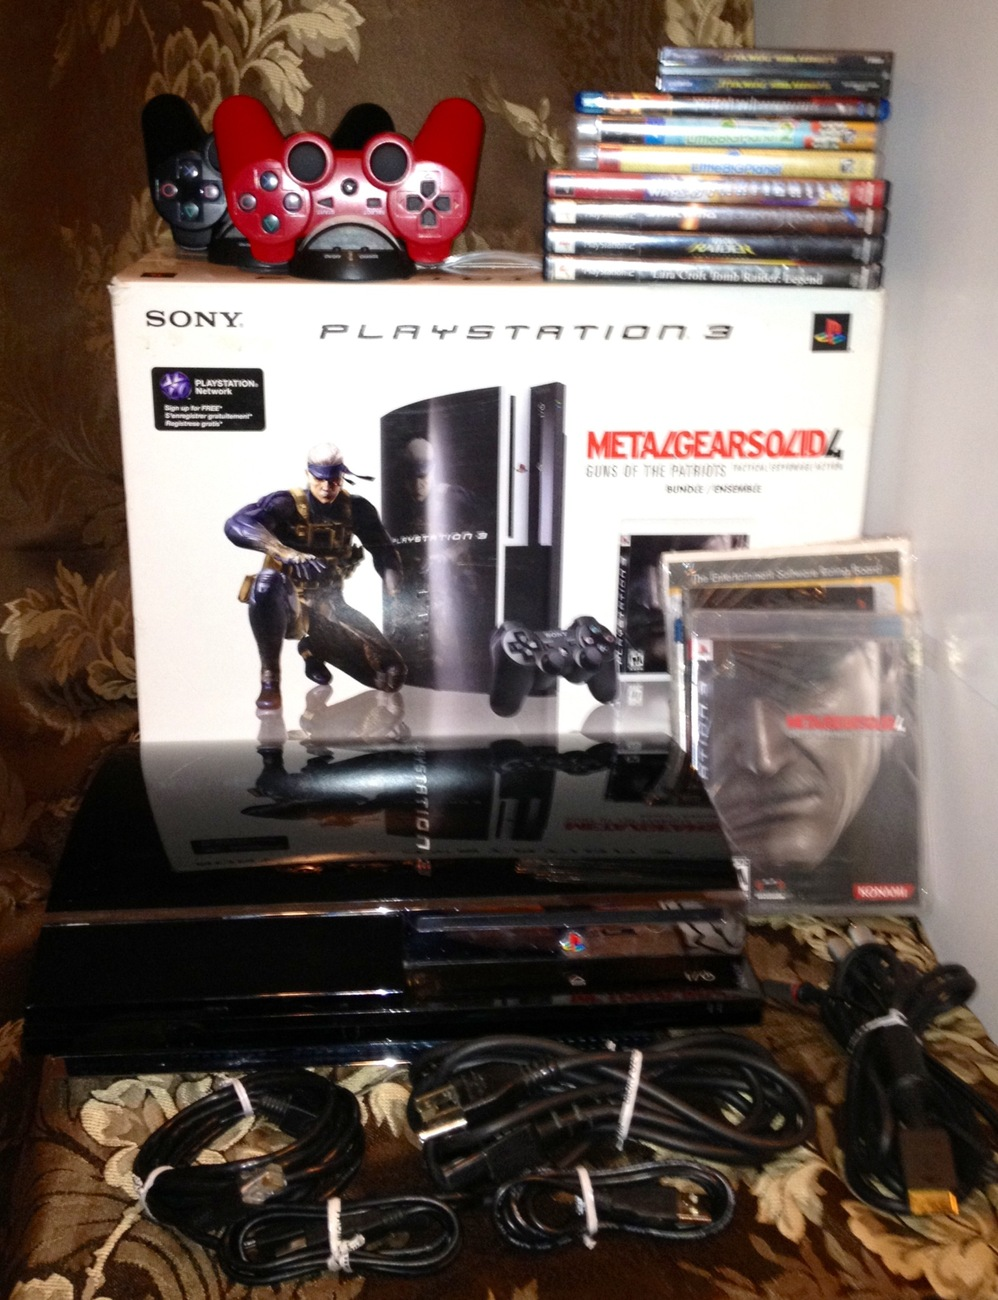 Playstation 3 (80GB) Backwards System Bundle(RARE)